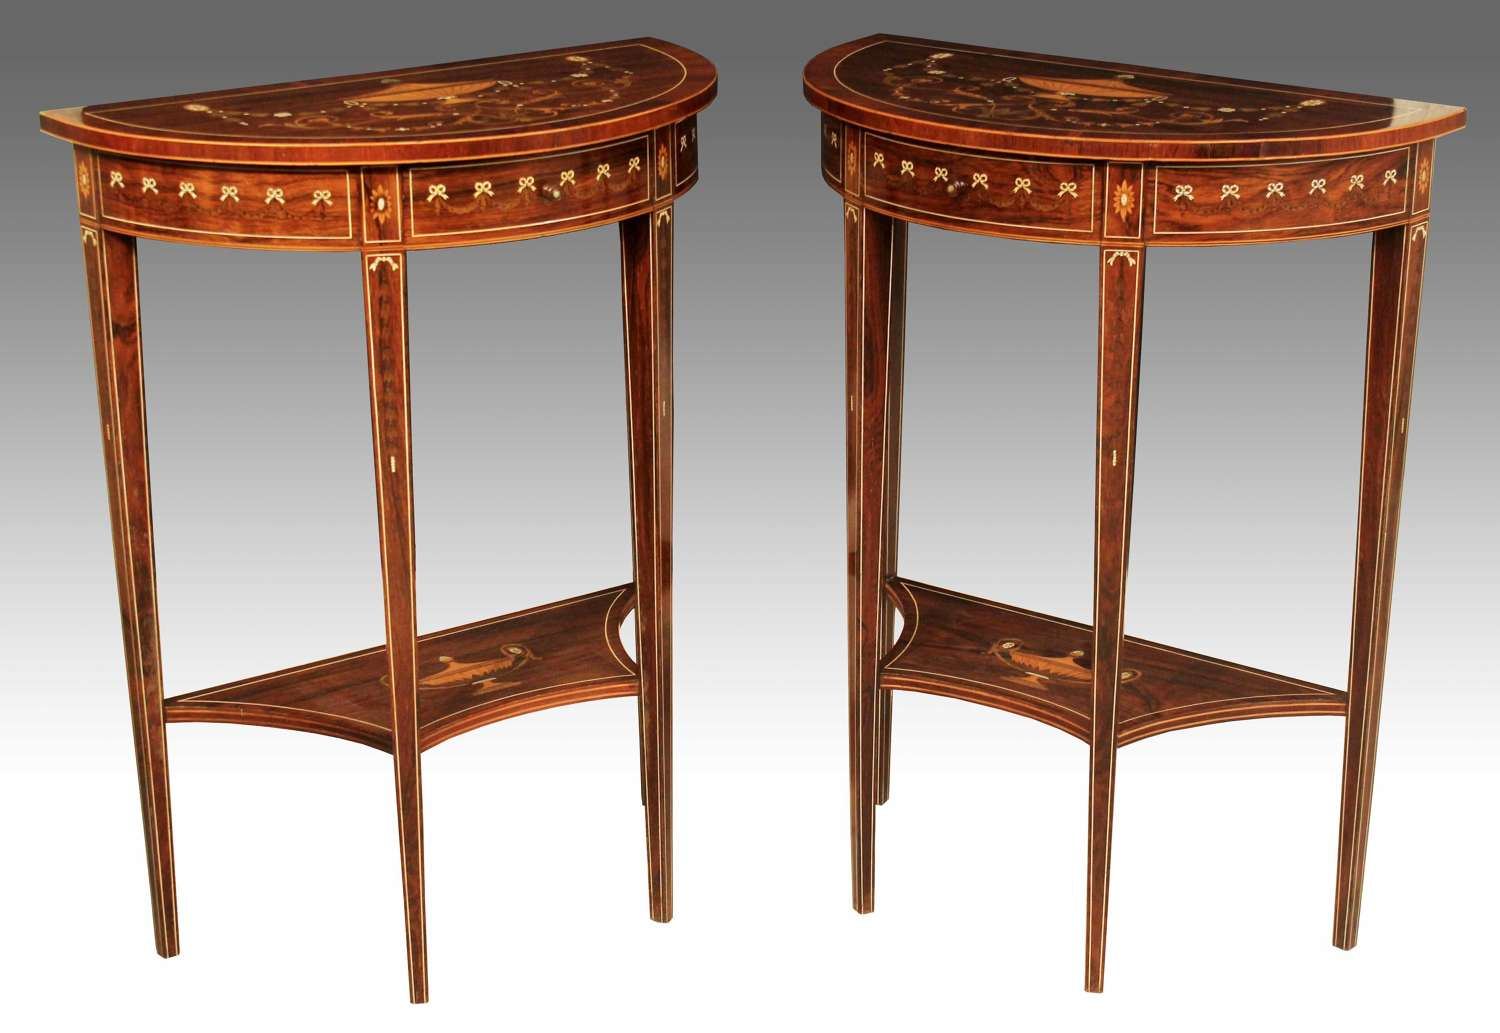 A Pair of Late Victorian Rosewood Inlaid Demi Lune Side Tables